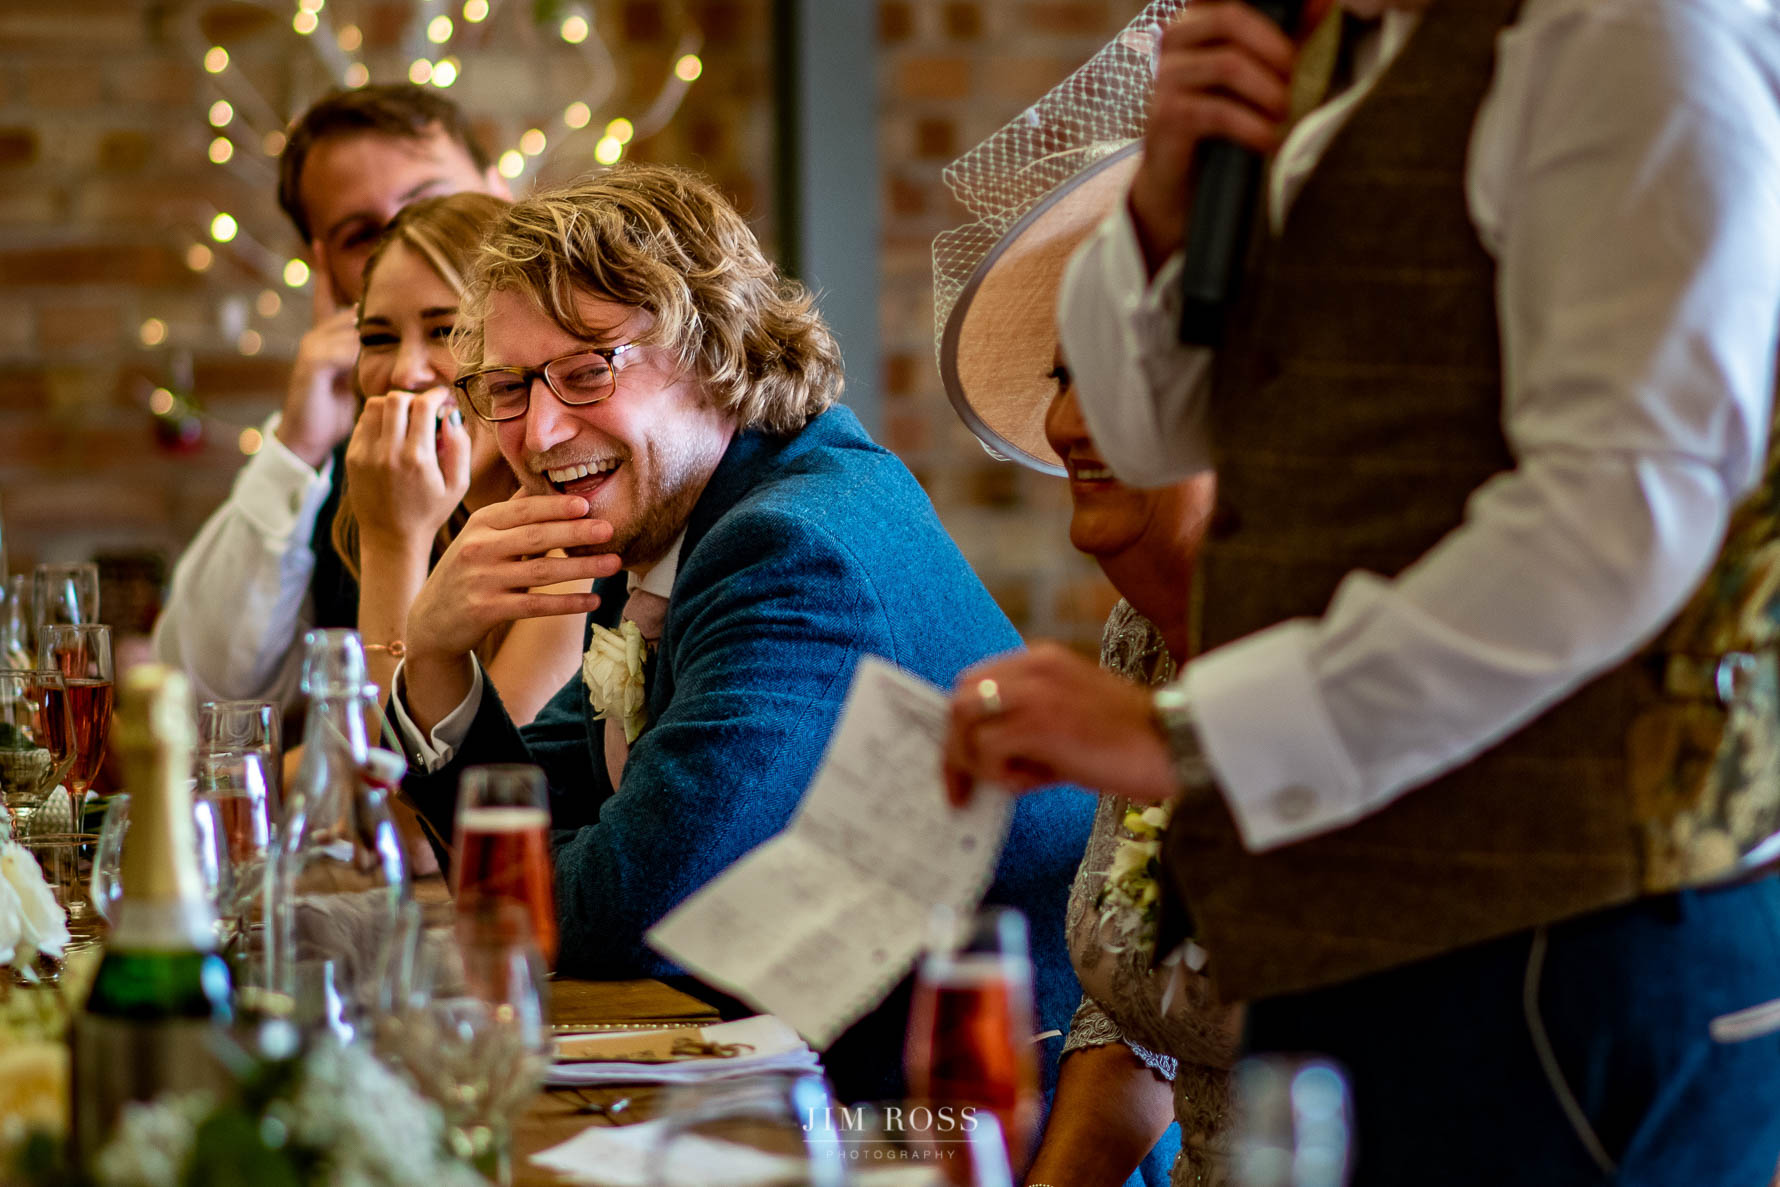 Top table giggles